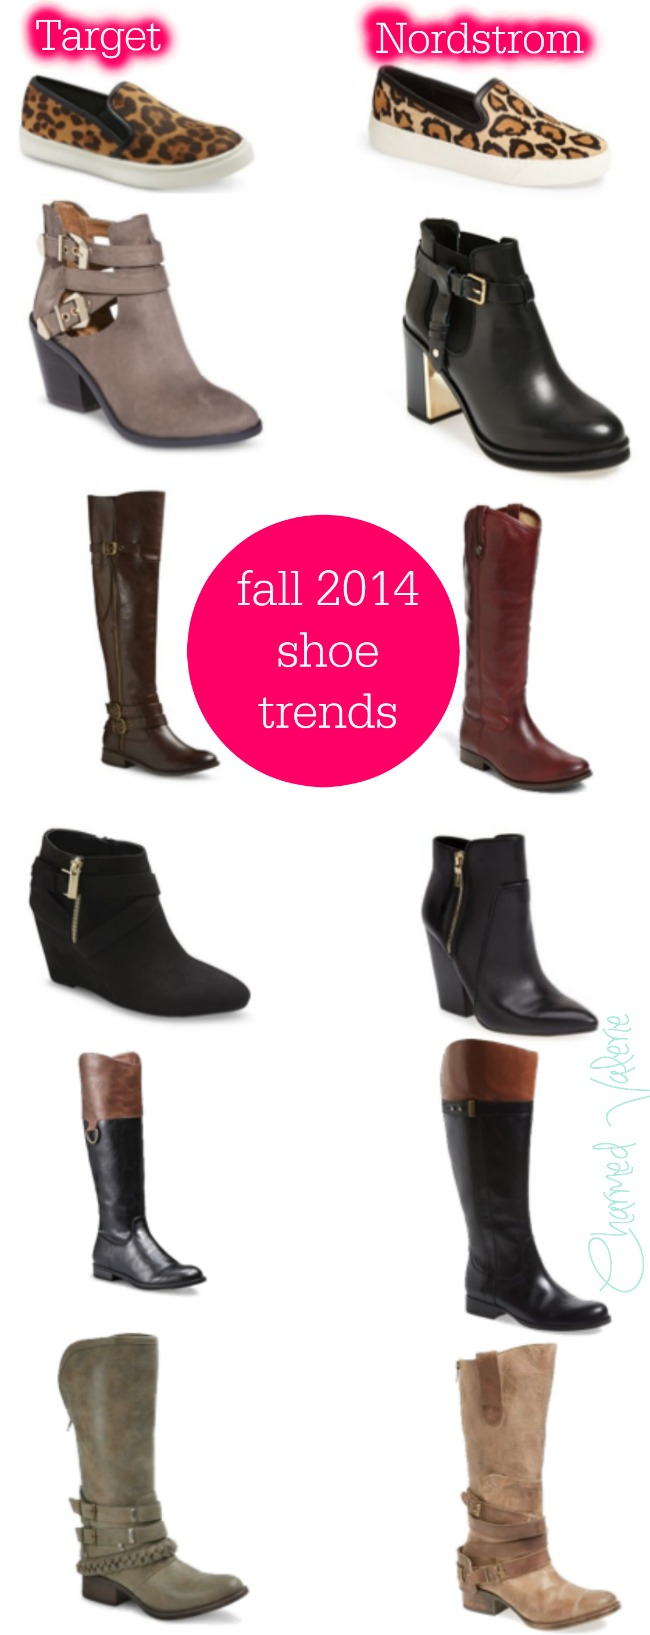 fall 2014 shoe trends Target vs Nordstrom